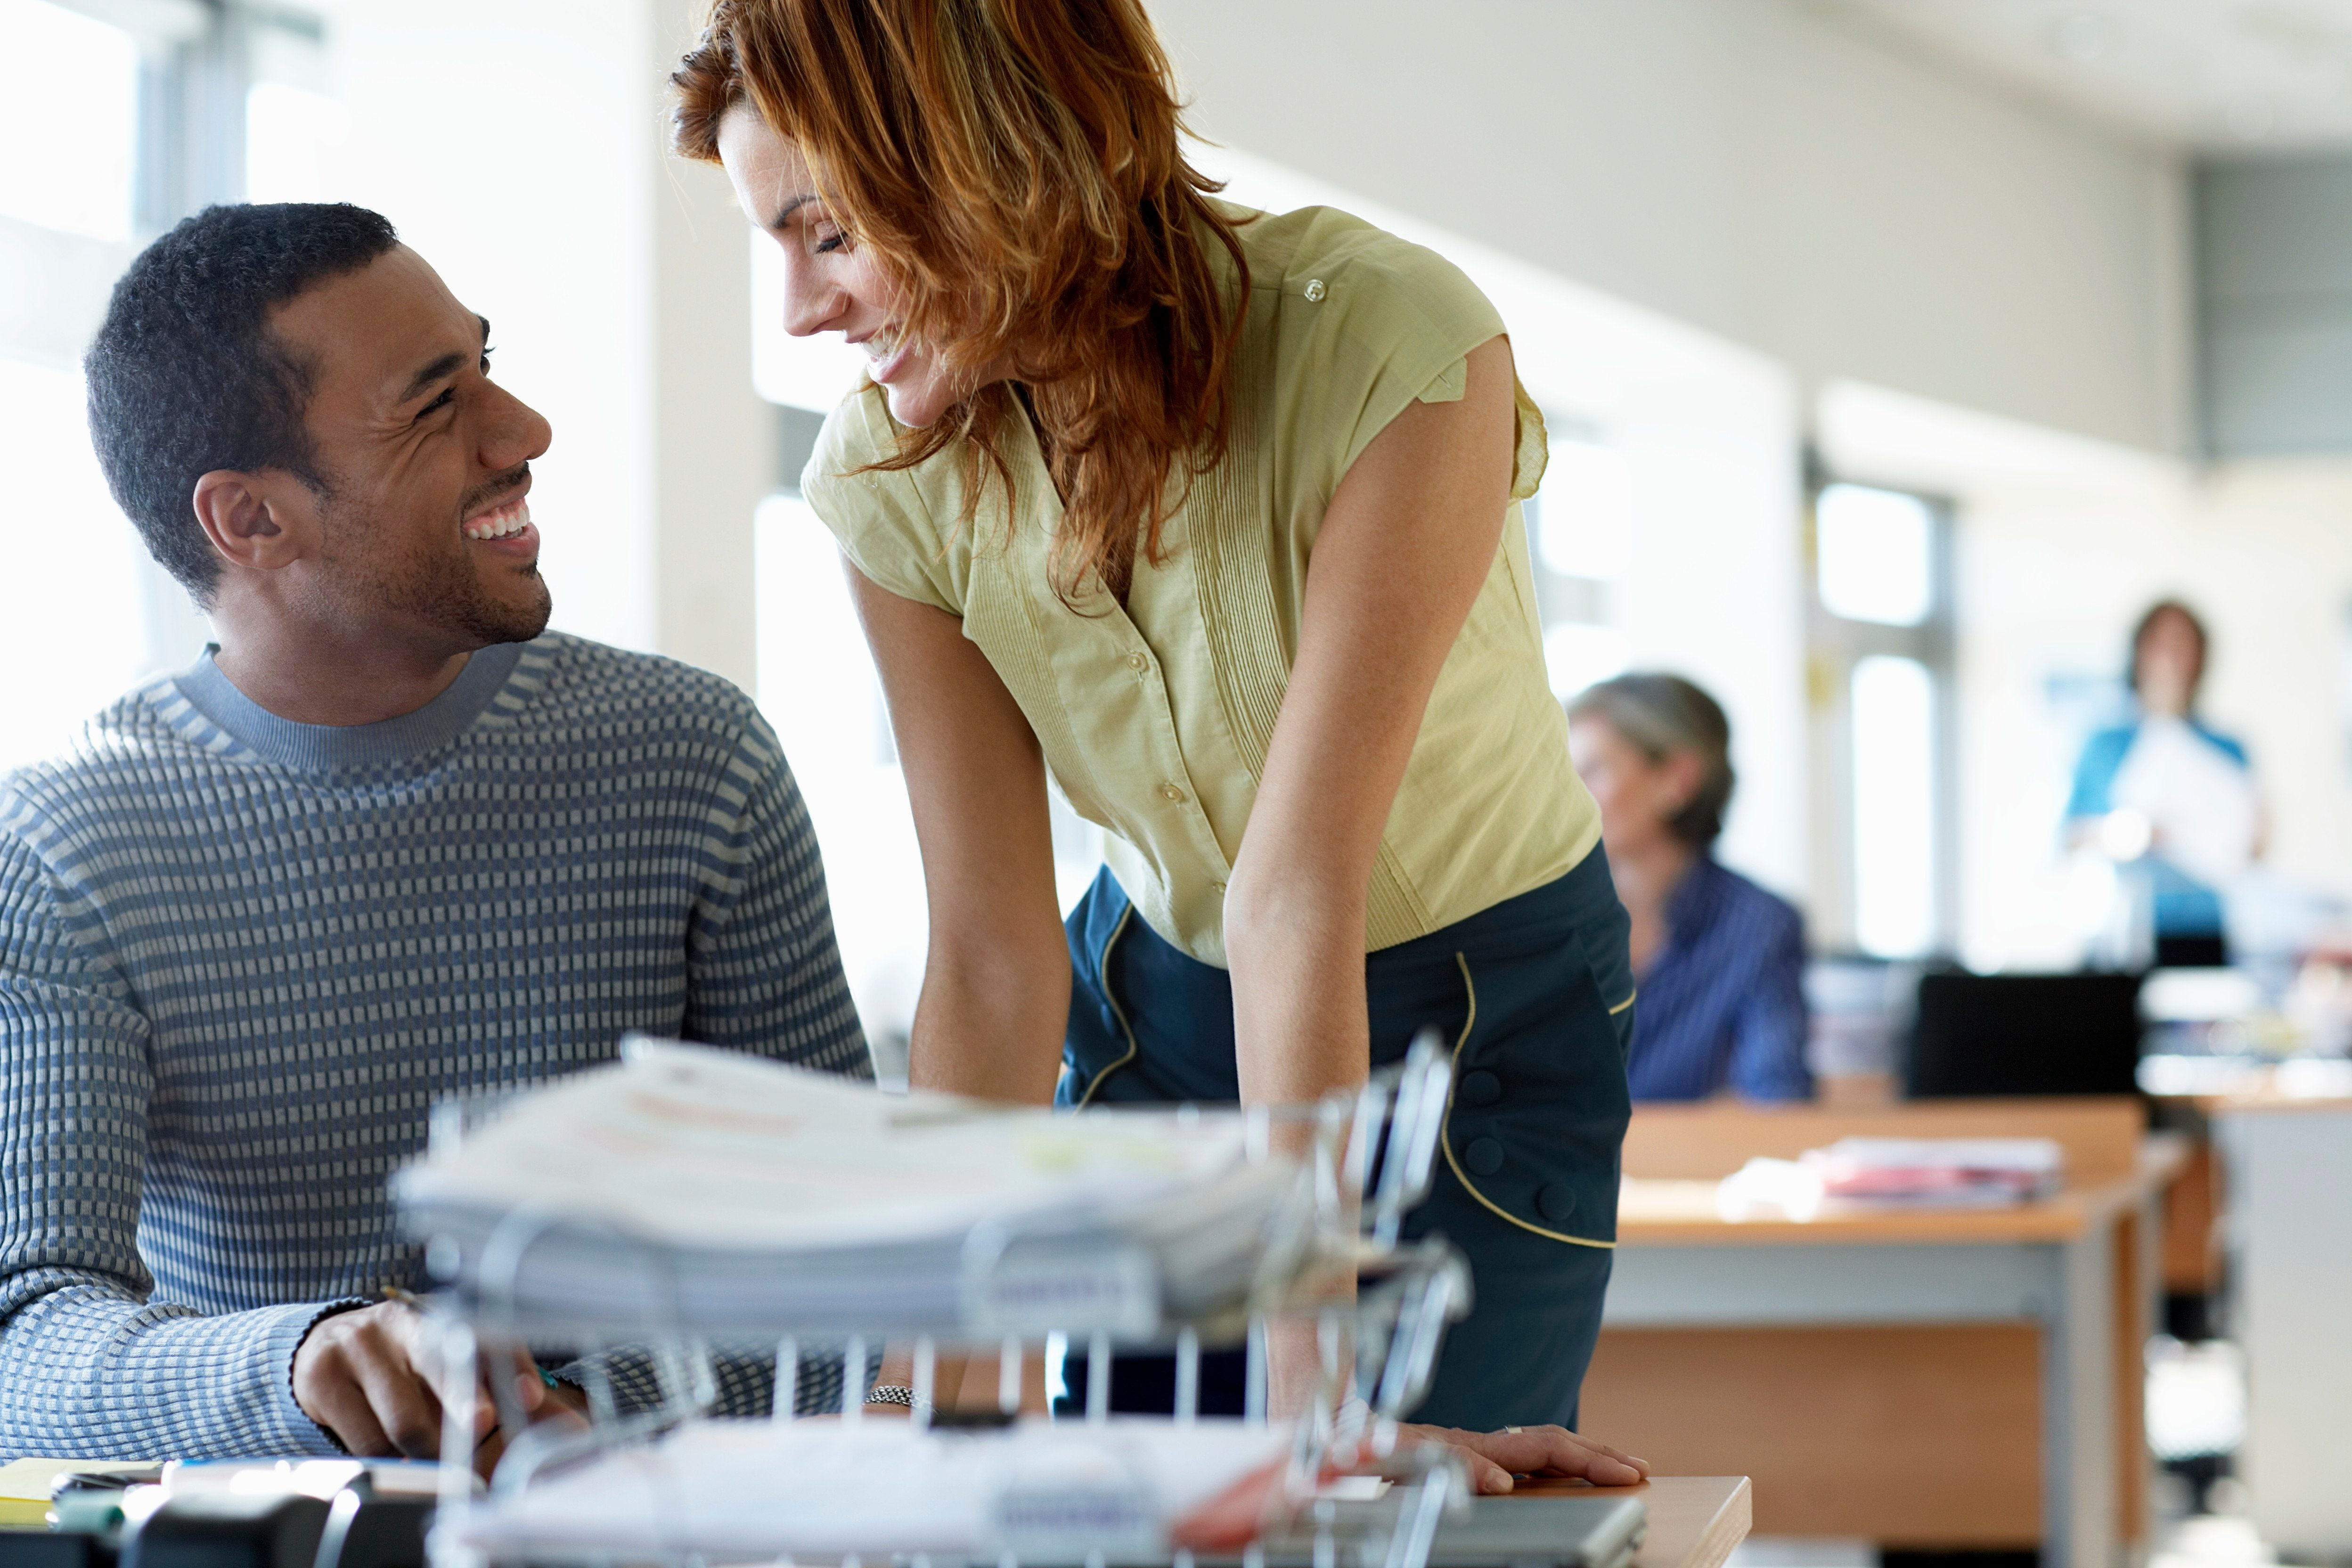 business man and business woman in an office. woman at the man's desk. smiling at each other.